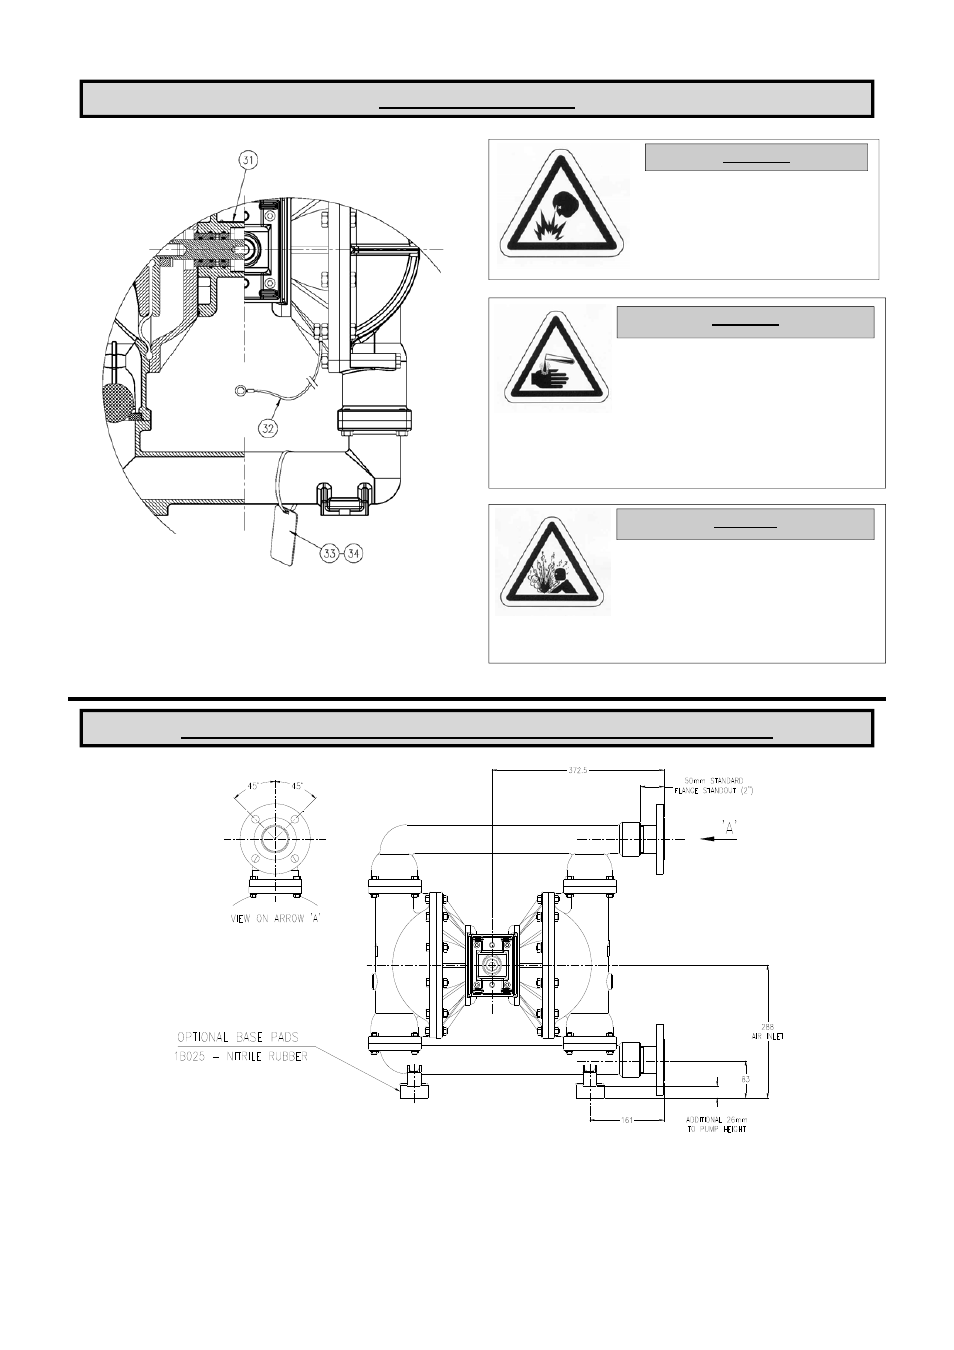 Cav Injector Pump Parts Diagram Trusted Wiring Diagrams Injection On Perkins Fuel Nitrile Part Block And Schematic U2022 John Deere Stx30